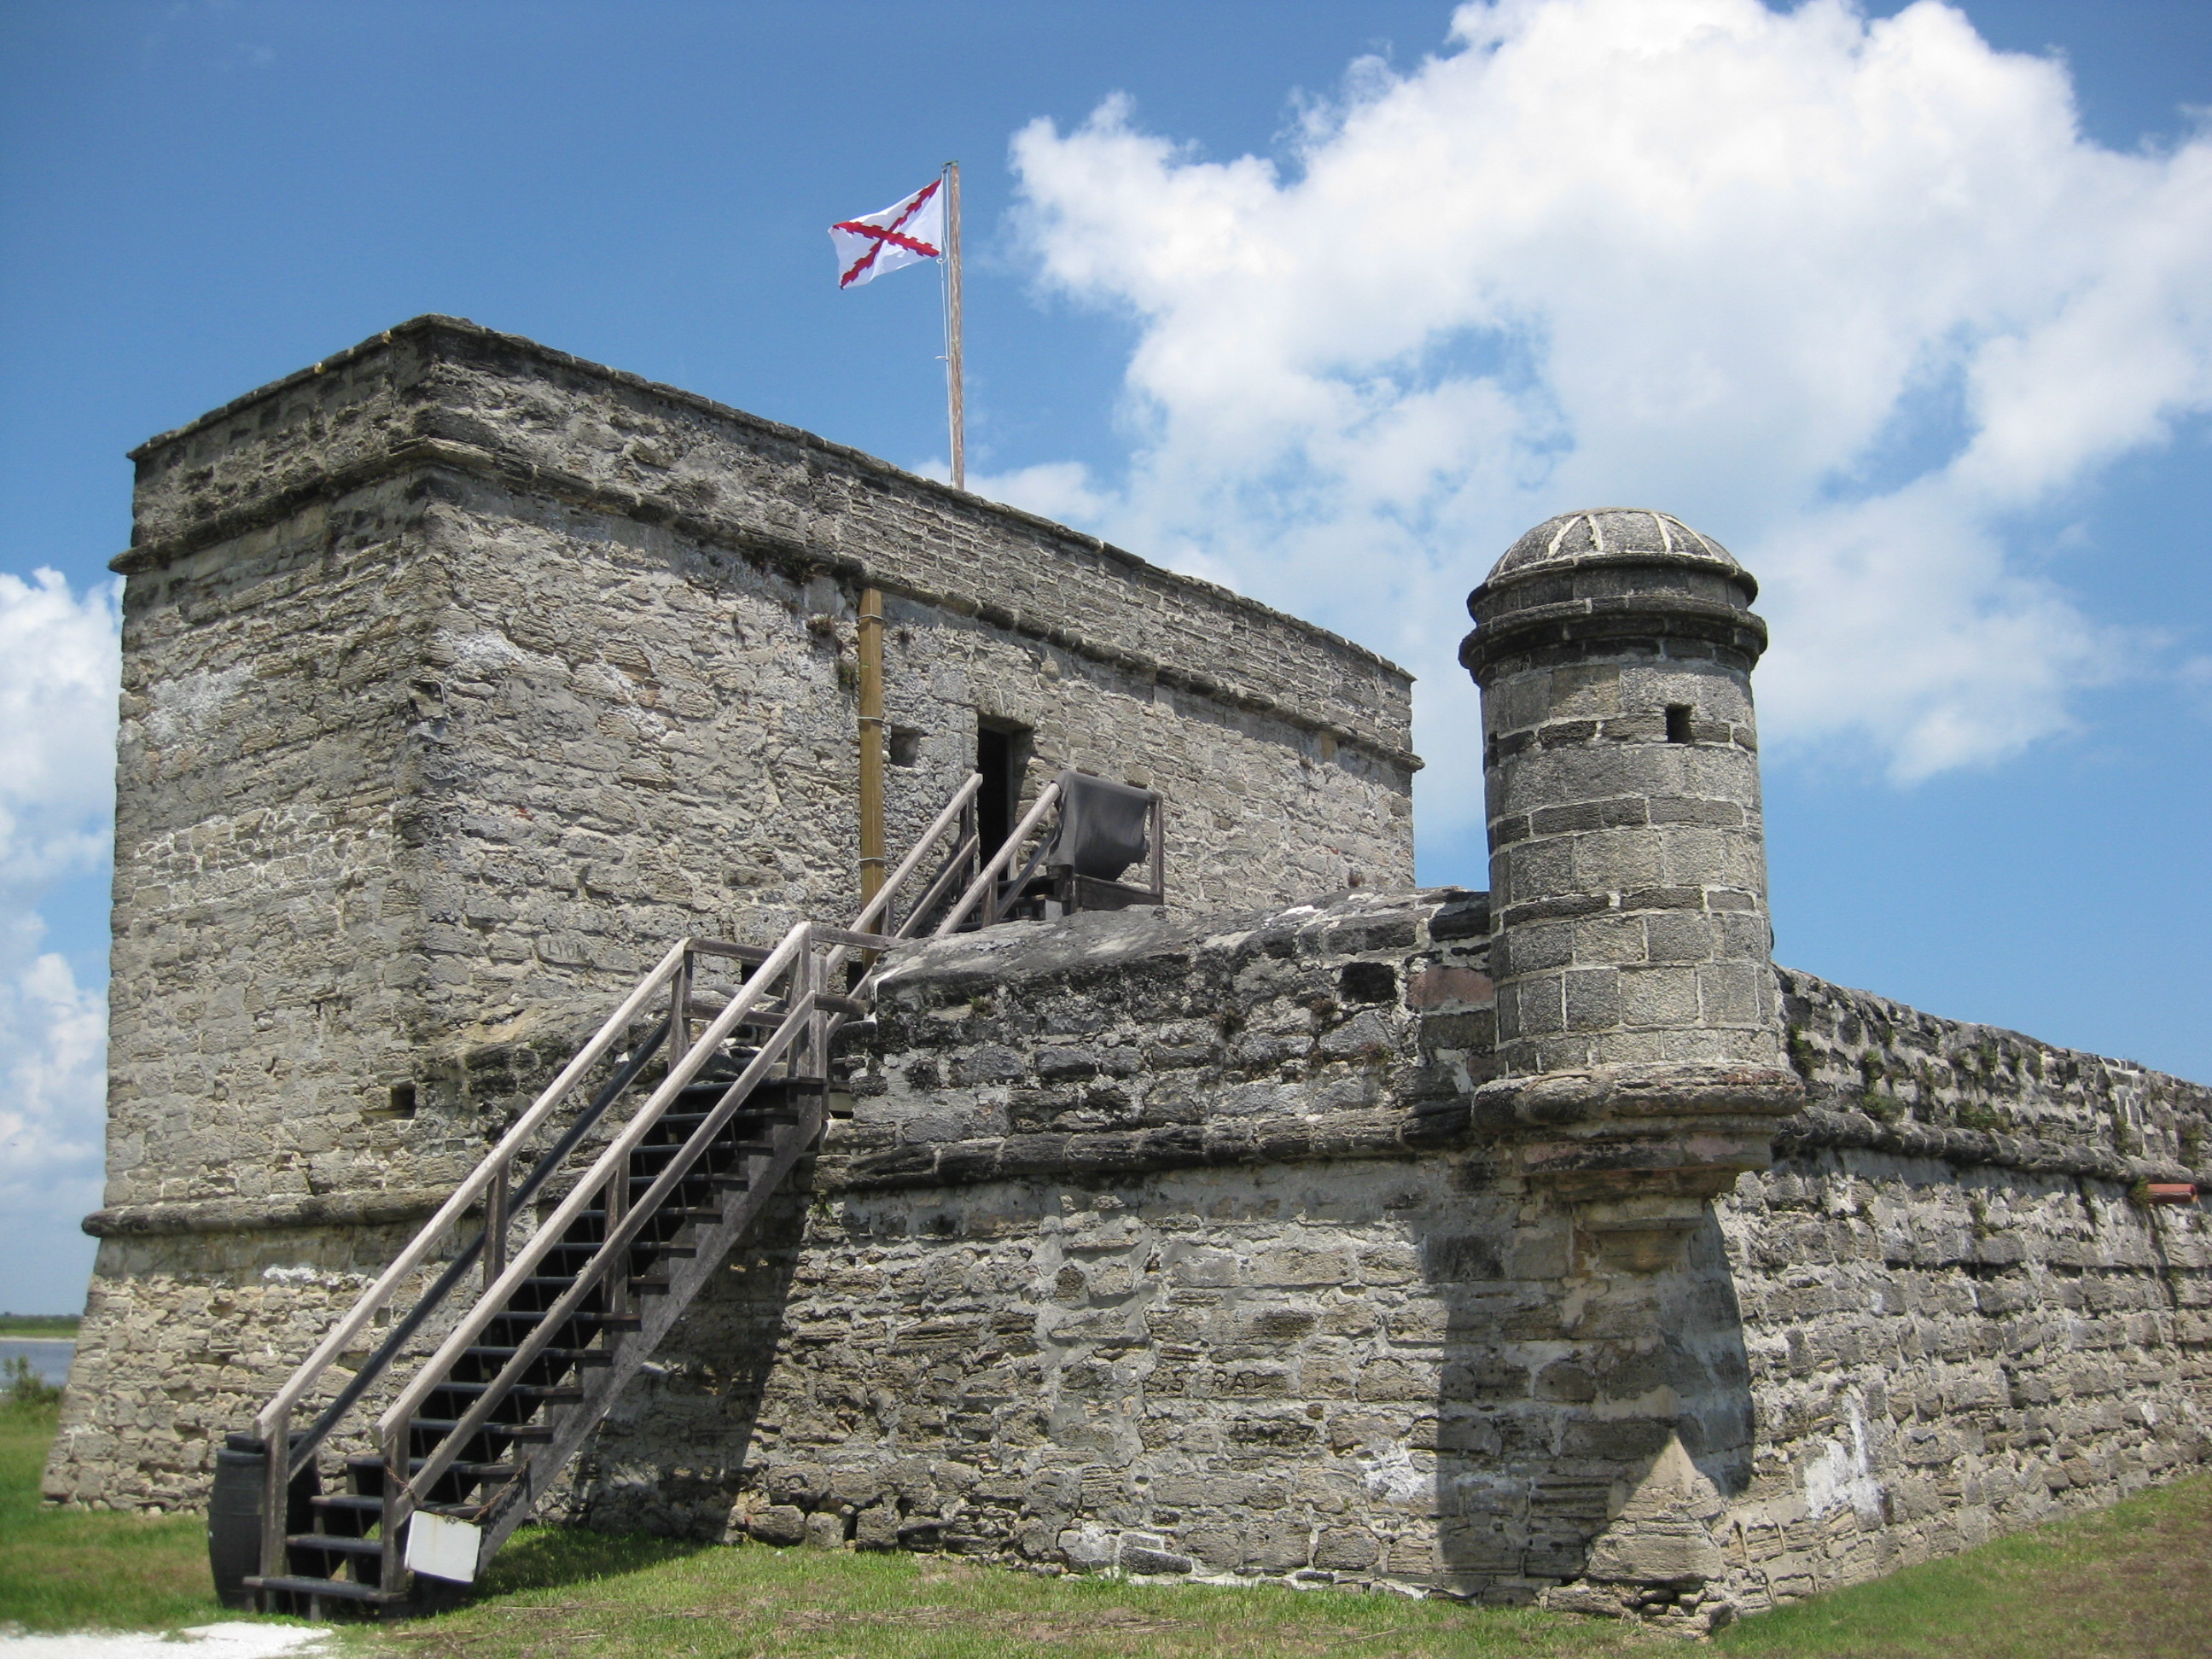 http://upload.wikimedia.org/wikipedia/commons/3/3d/Ft_Matanzas_2008.JPG